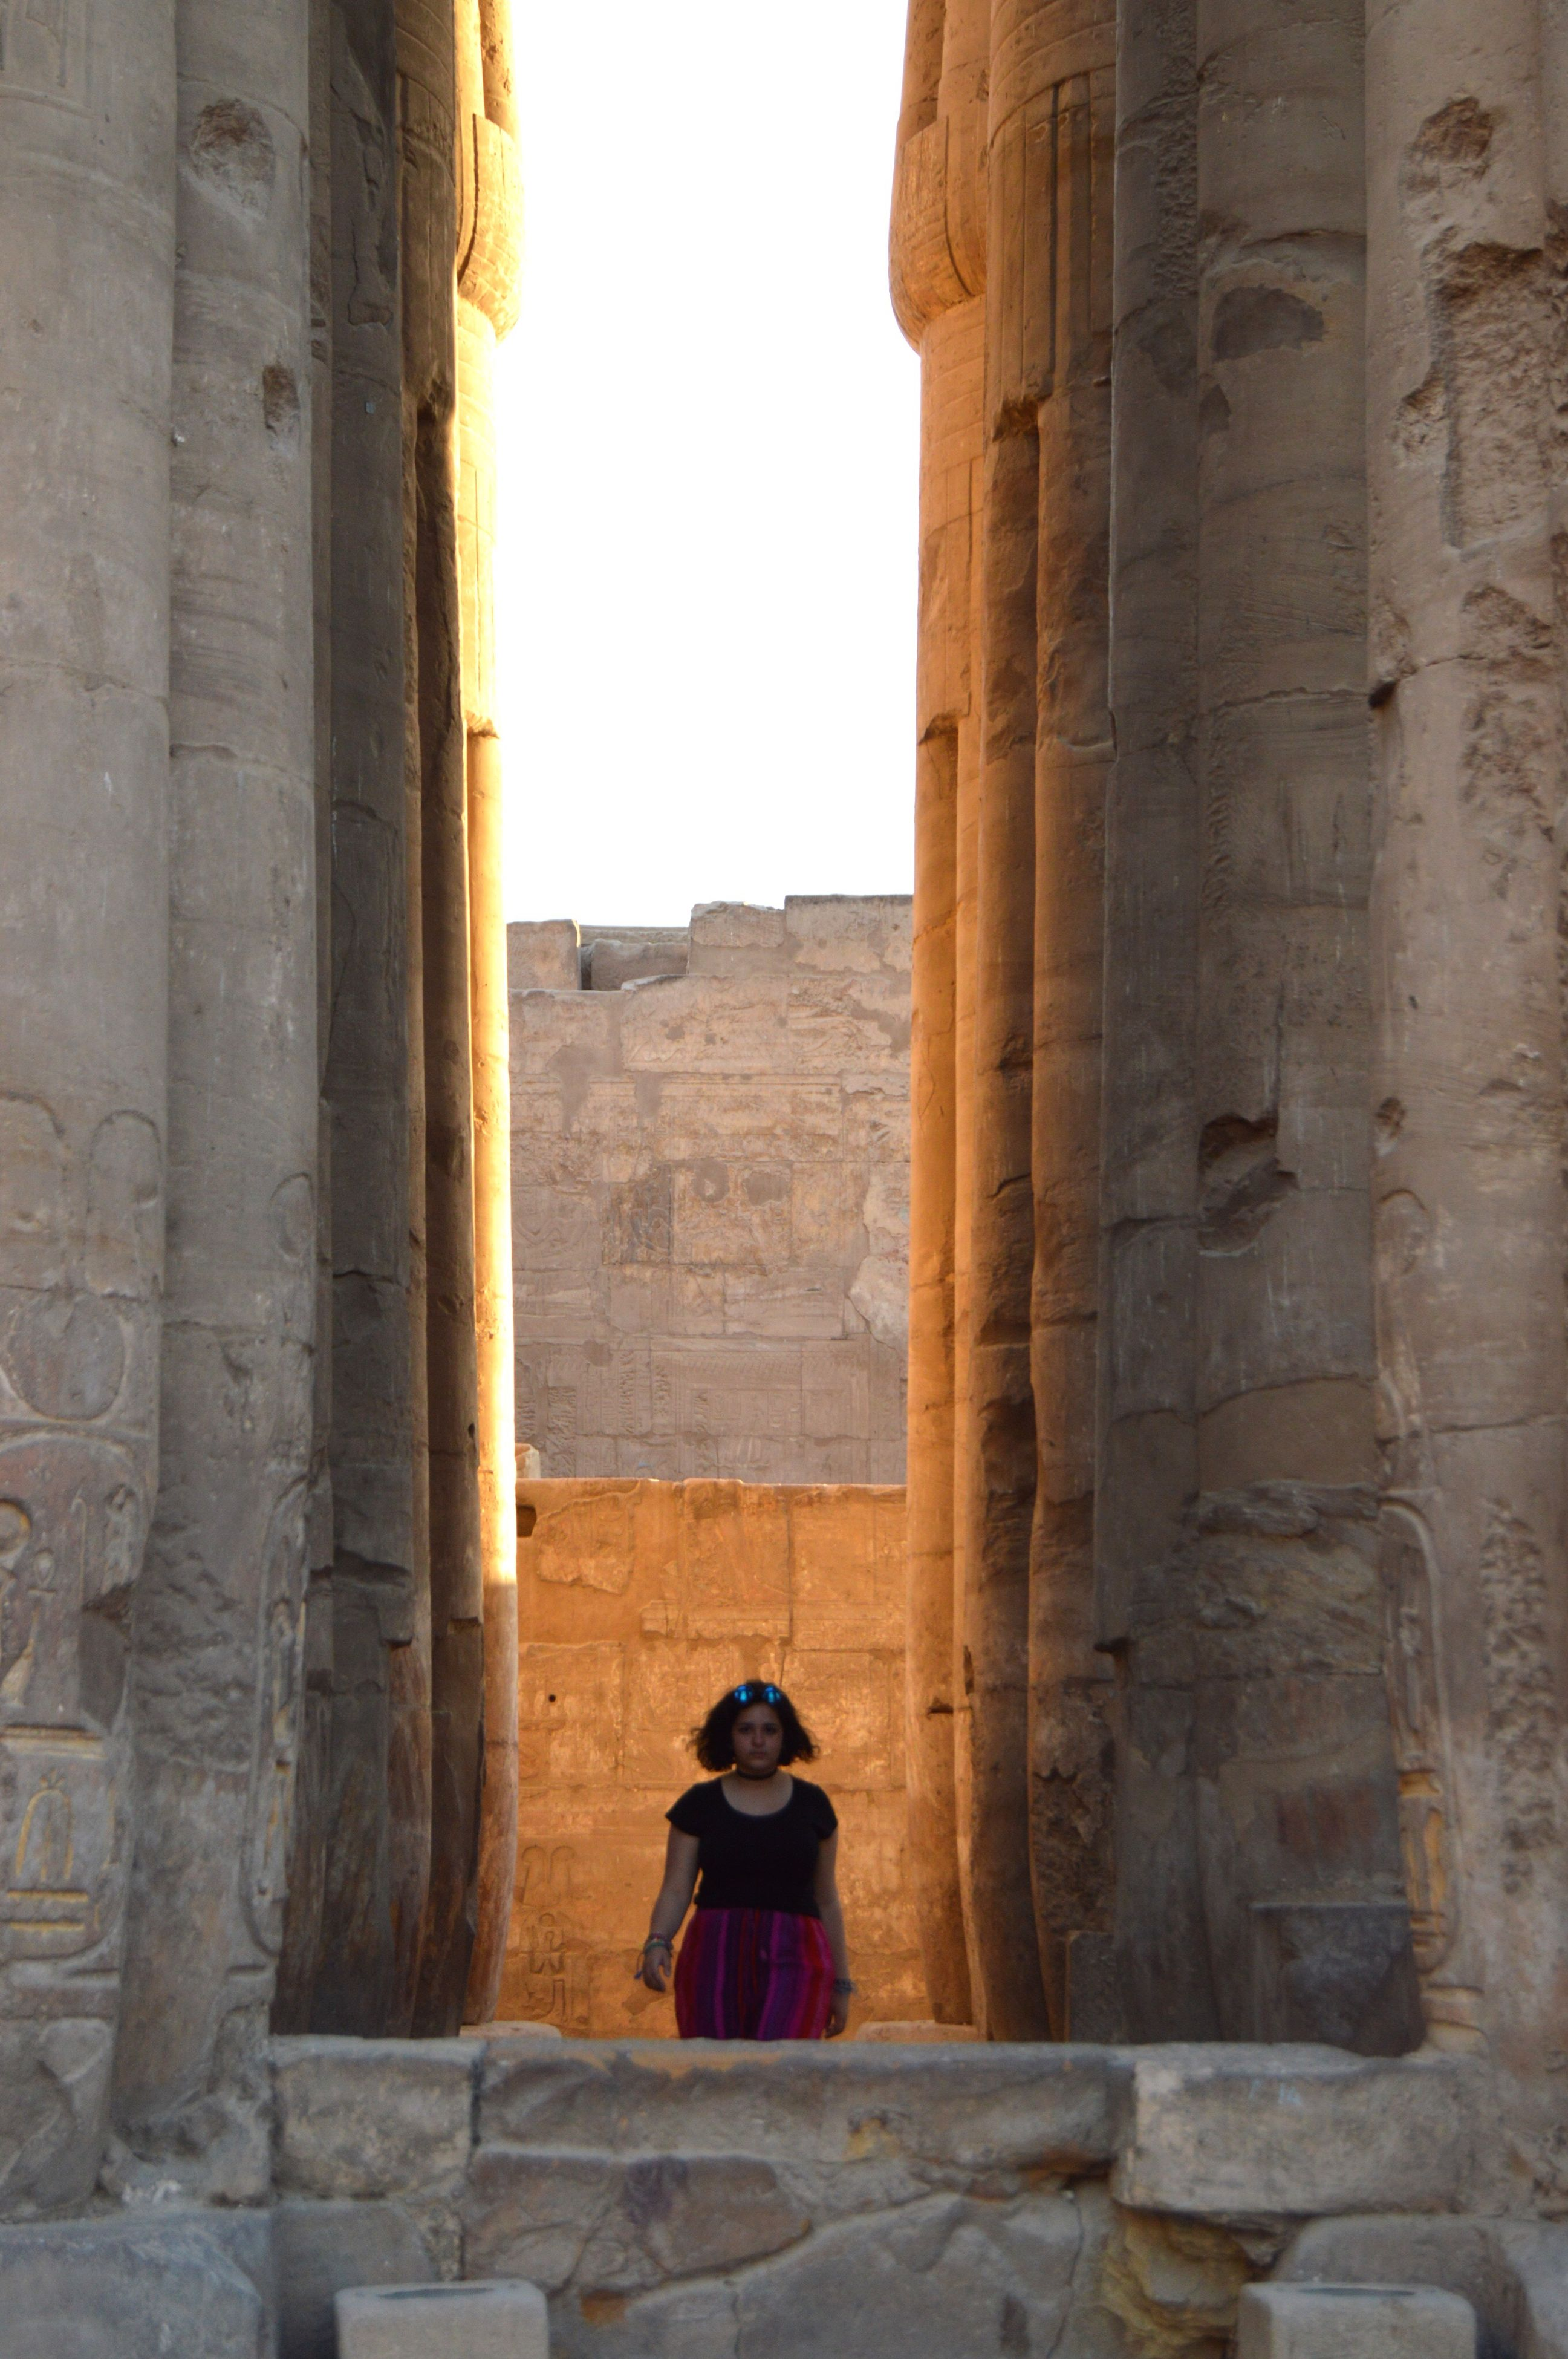 architecture, old ruin, built structure, real people, history, ancient, building exterior, architectural column, traditional clothing, lifestyles, arch, one person, tourism, women, travel destinations, religion, leisure activity, young women, day, outdoors, ancient civilization, place of worship, young adult, sky, adult, people